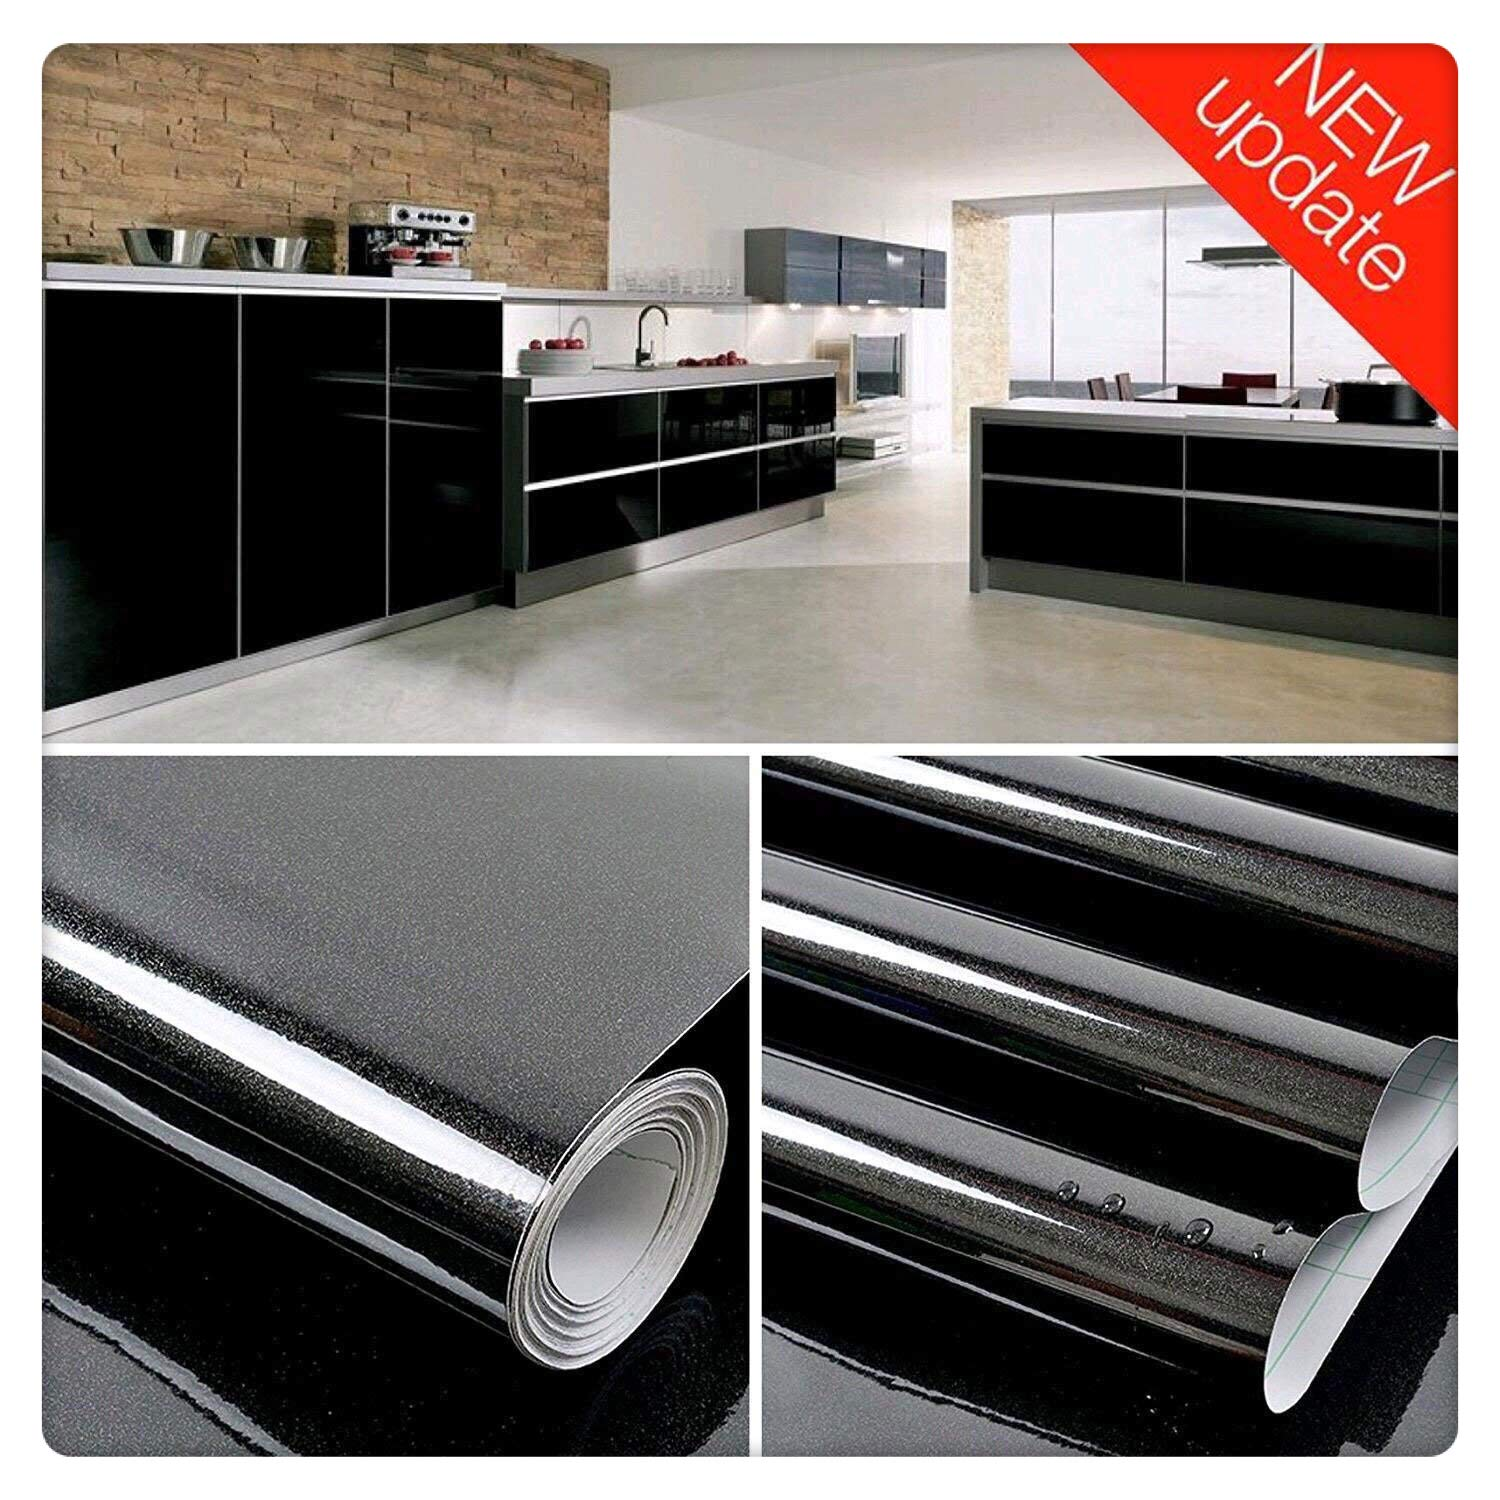 """Black Contact Paper Vinyl Contact Paper Self Adhesive Film Decorative Contact Paper Waterproof Stain-Resistant for Kitchen Counter Top Cabinets Wardrobe Furniture (15.8"""" X 78.8"""")"""